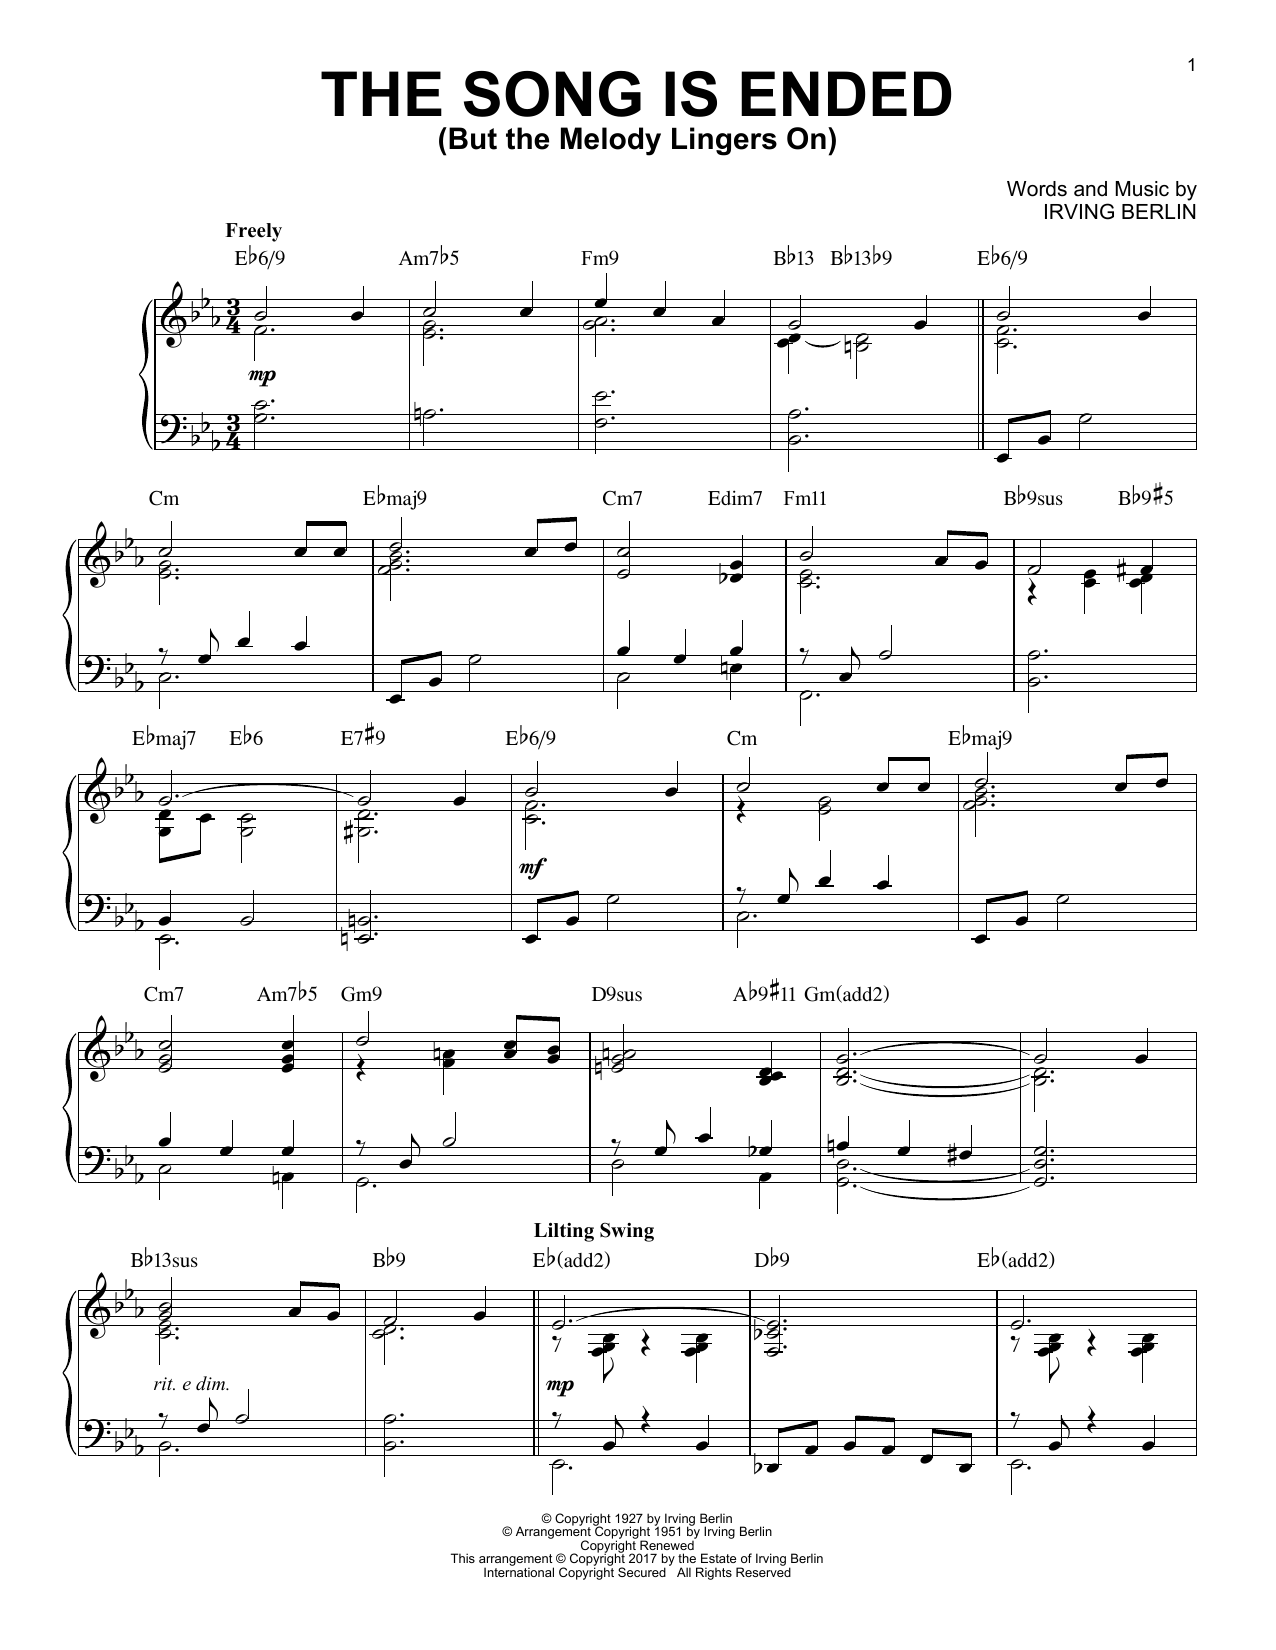 Irving Berlin The Song Is Ended (But The Melody Lingers On) sheet music notes and chords. Download Printable PDF.